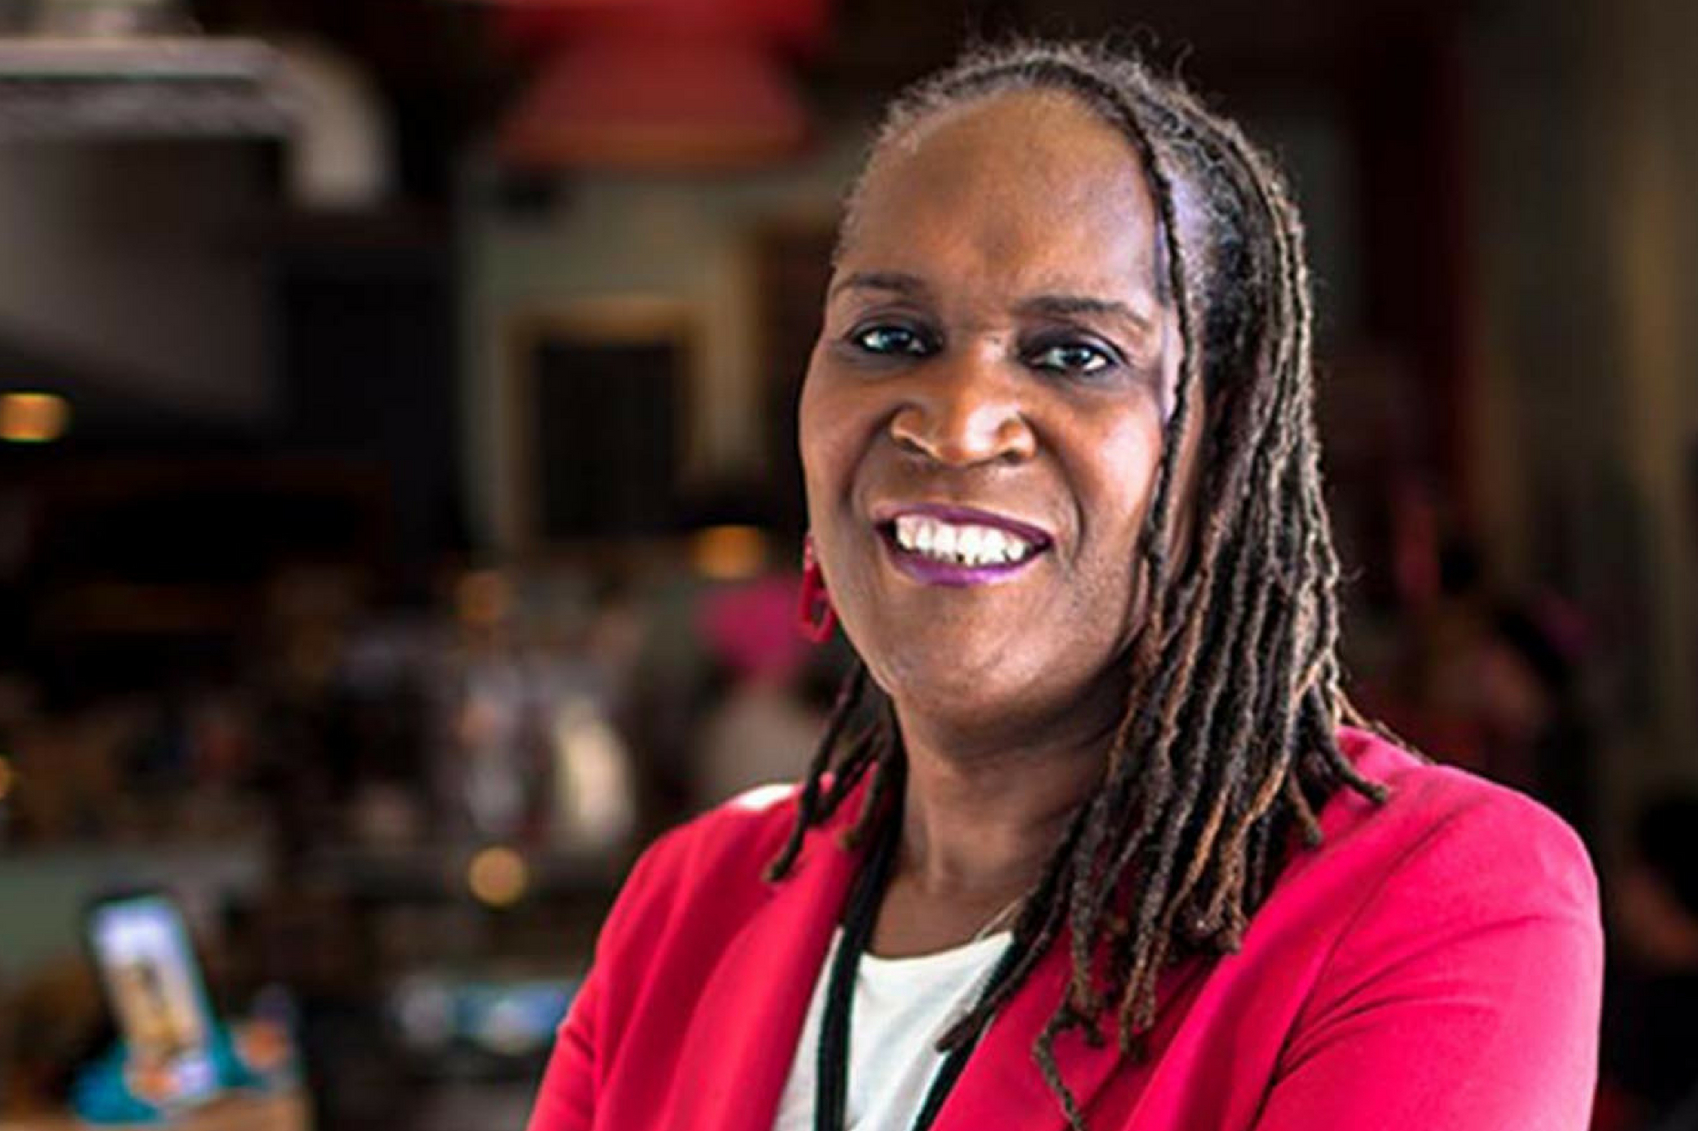 Andrea Jenkins is the first openly transgender black woman to be elected into U.S. office. Jenkins won this title in November 2017 when she was elected to Minneapolis City Council. Jenkins is a los a poet, activist and historial whose work tends to focus on civil engagement and social movements. One of her biggest projects thus far has been curating the Transgender Oral History Project at the University of Minnesota.